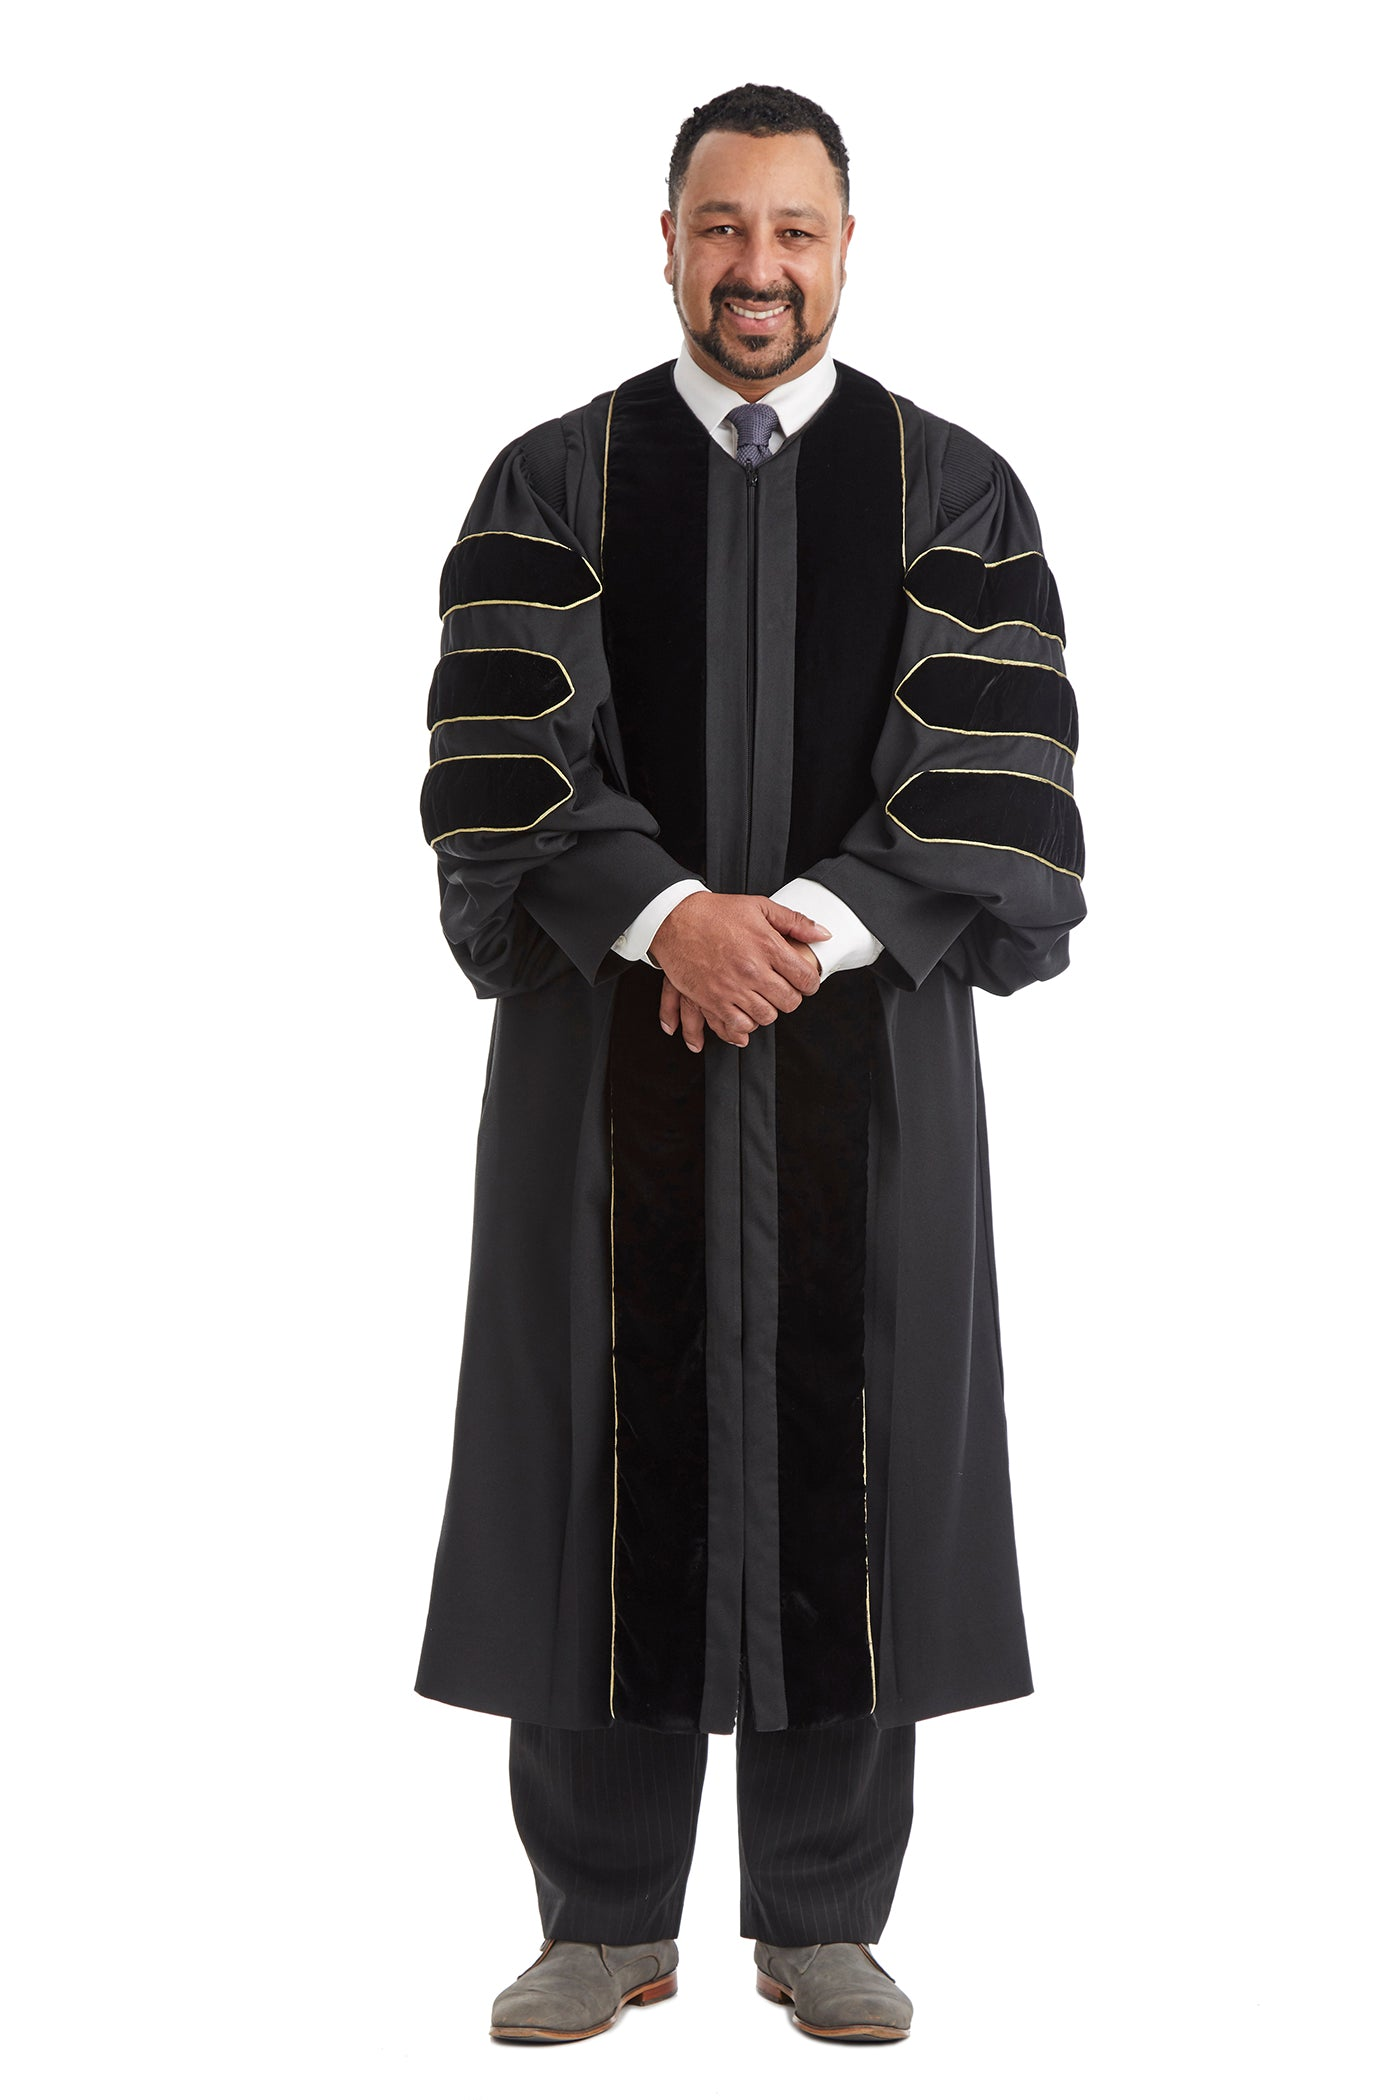 Doctoral Gown for US Military Academy at West Point